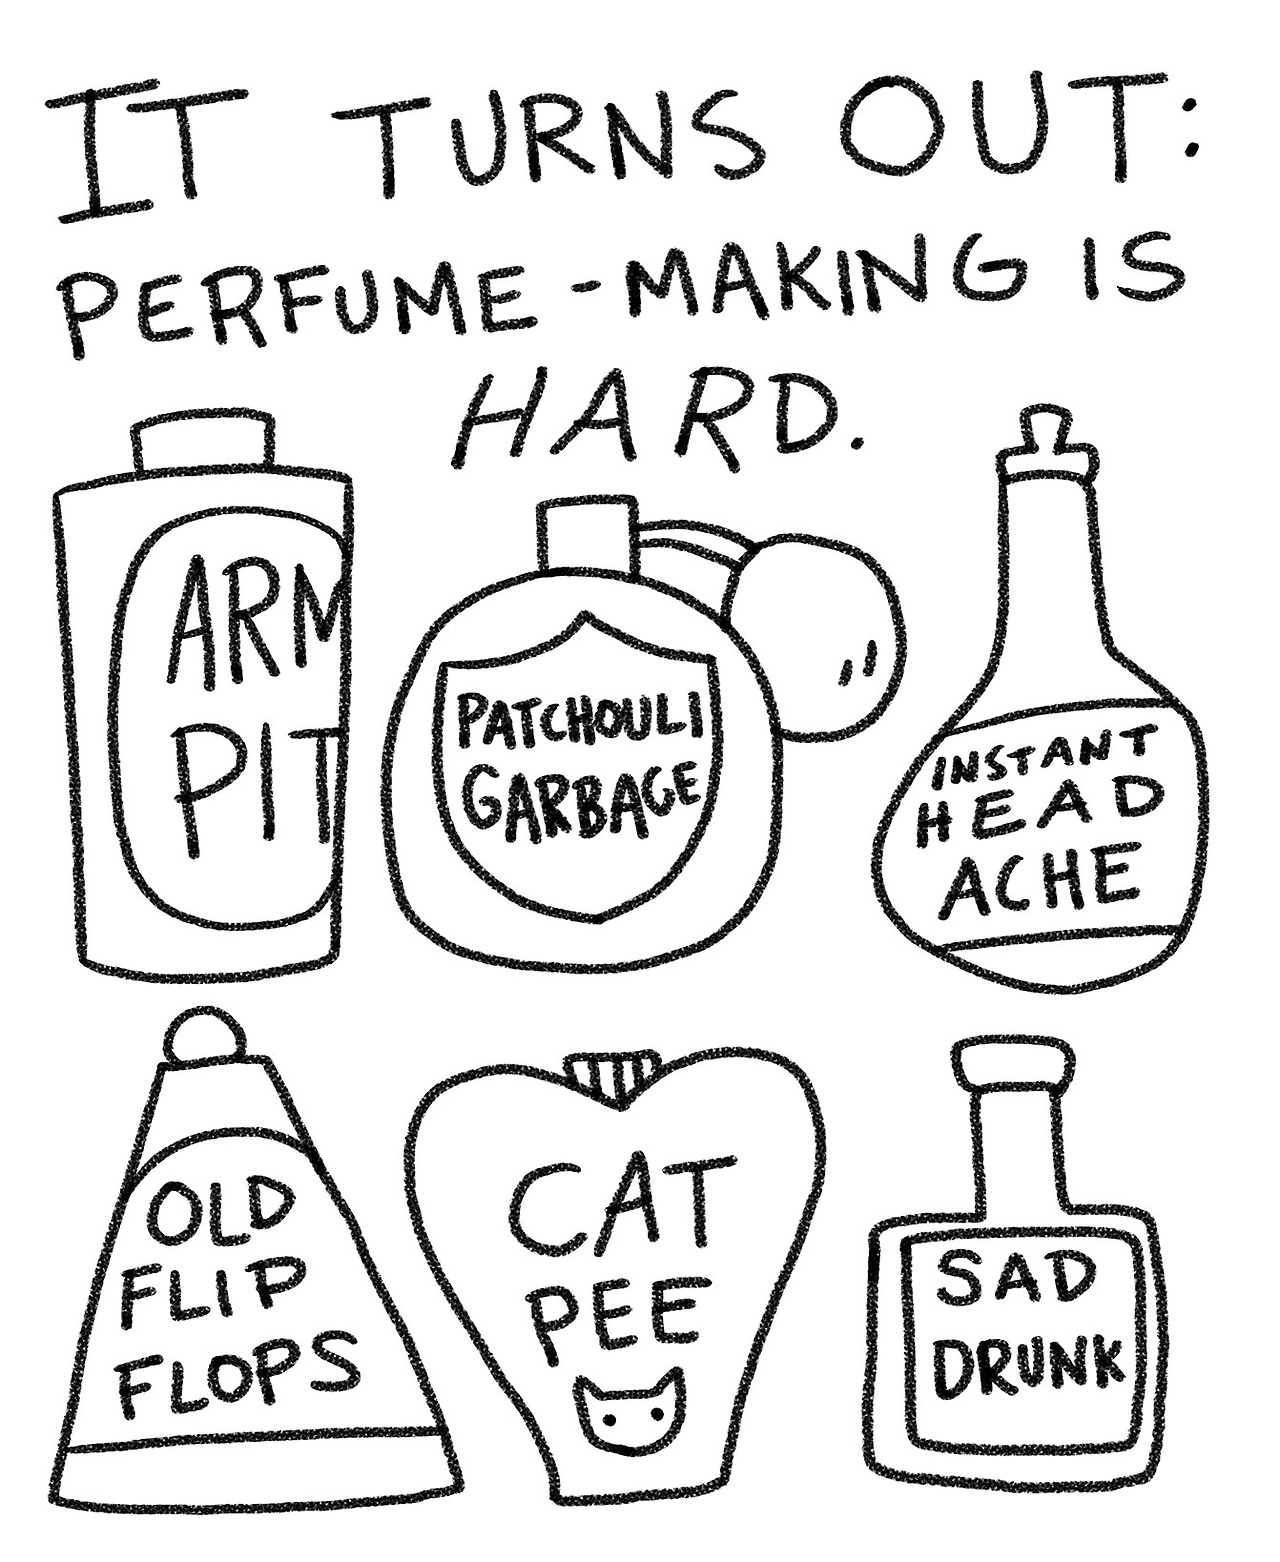 "I had my first perfume class today. Turns out: Perfume making is HARD. I've been griping for YEARS about how most commercial shampoos, perfumes and soaps and stuff smell like candy flower coconut nonsense and I hate that. I have a supa-sniffer, and prefer stuff like ""olive"" and ""green tea"" and ""fig leaf"" and ""pink peppercorn"" for scents. I've been experimenting with making homemade body spray with green tea and white musk essence, water and vodka in a spray bottle (with limited success). SO for my birthday this year, my mom bought me a two-day natural perfumerie class. I was super excited to learn more about the real process. Turns out, it's all very complicated and it is actually really easy to combine various aromas with disastrous results. I mostly blame patchouli. What a sad disgrace for an essential oil!  I'm determined to get better at this. *FLARES NOSTRILS IN DETERMINATION*"